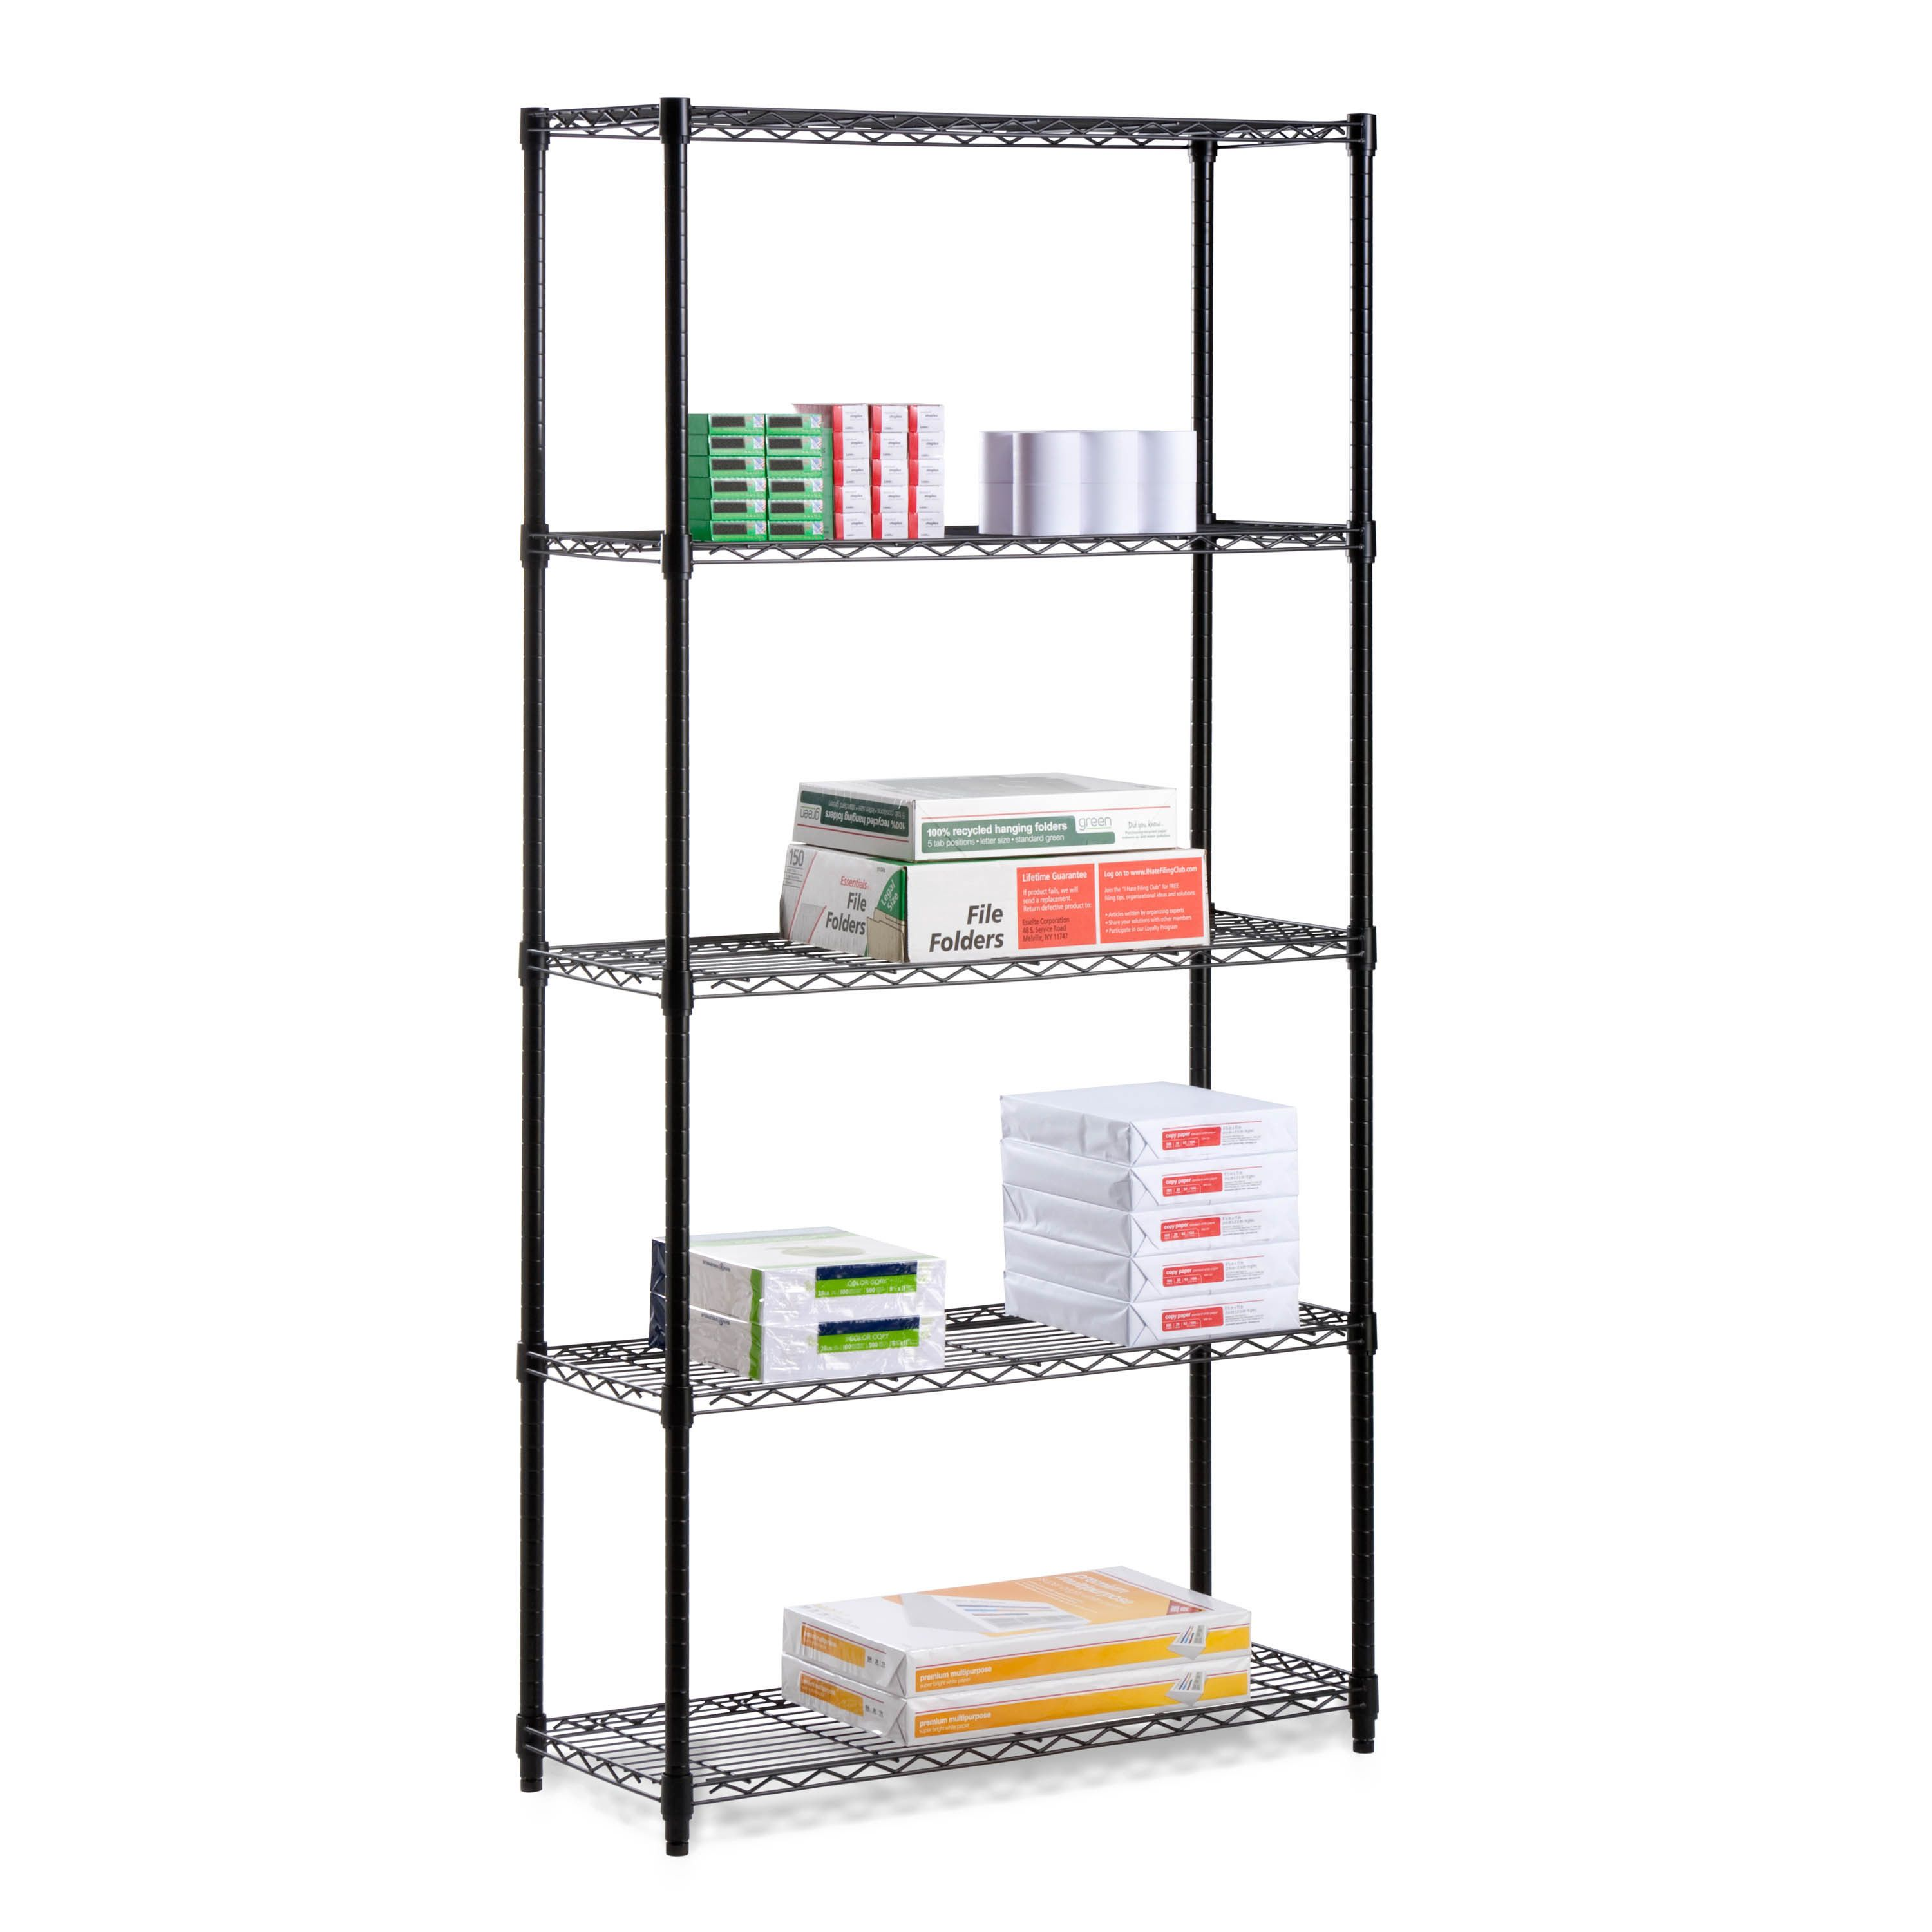 Honeycando shf tier steel urban adjustable storage